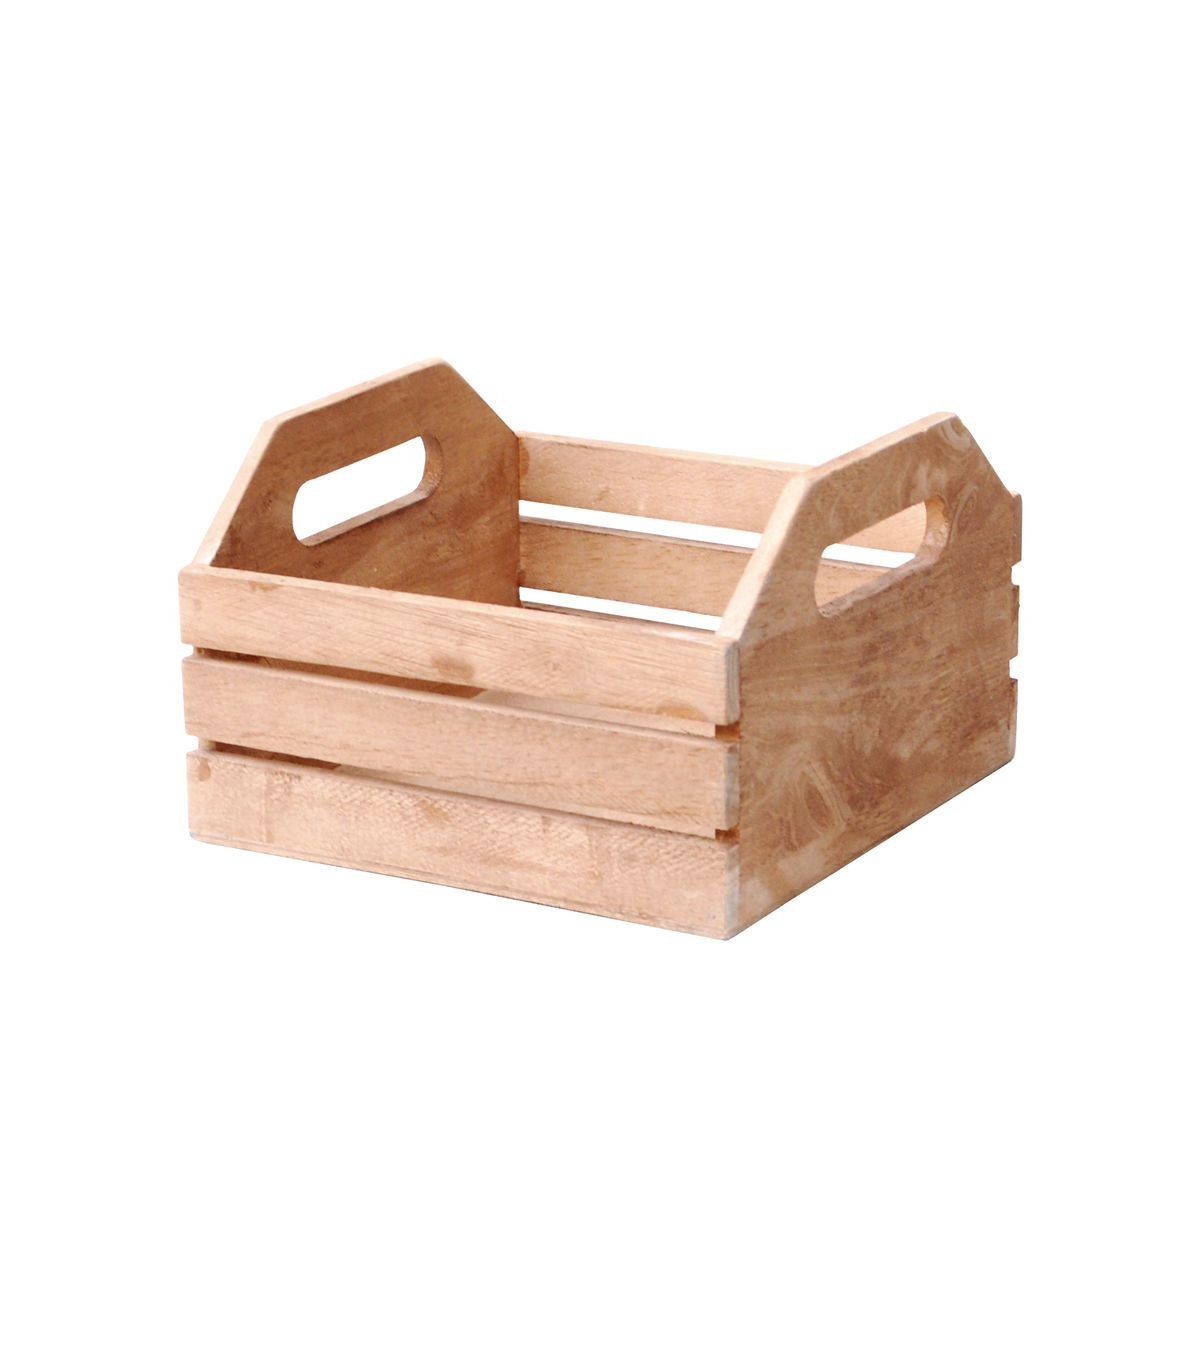 Small Wooden Crate With Handles Small Wooden Crates Wooden Crates With Handles Wooden Crate